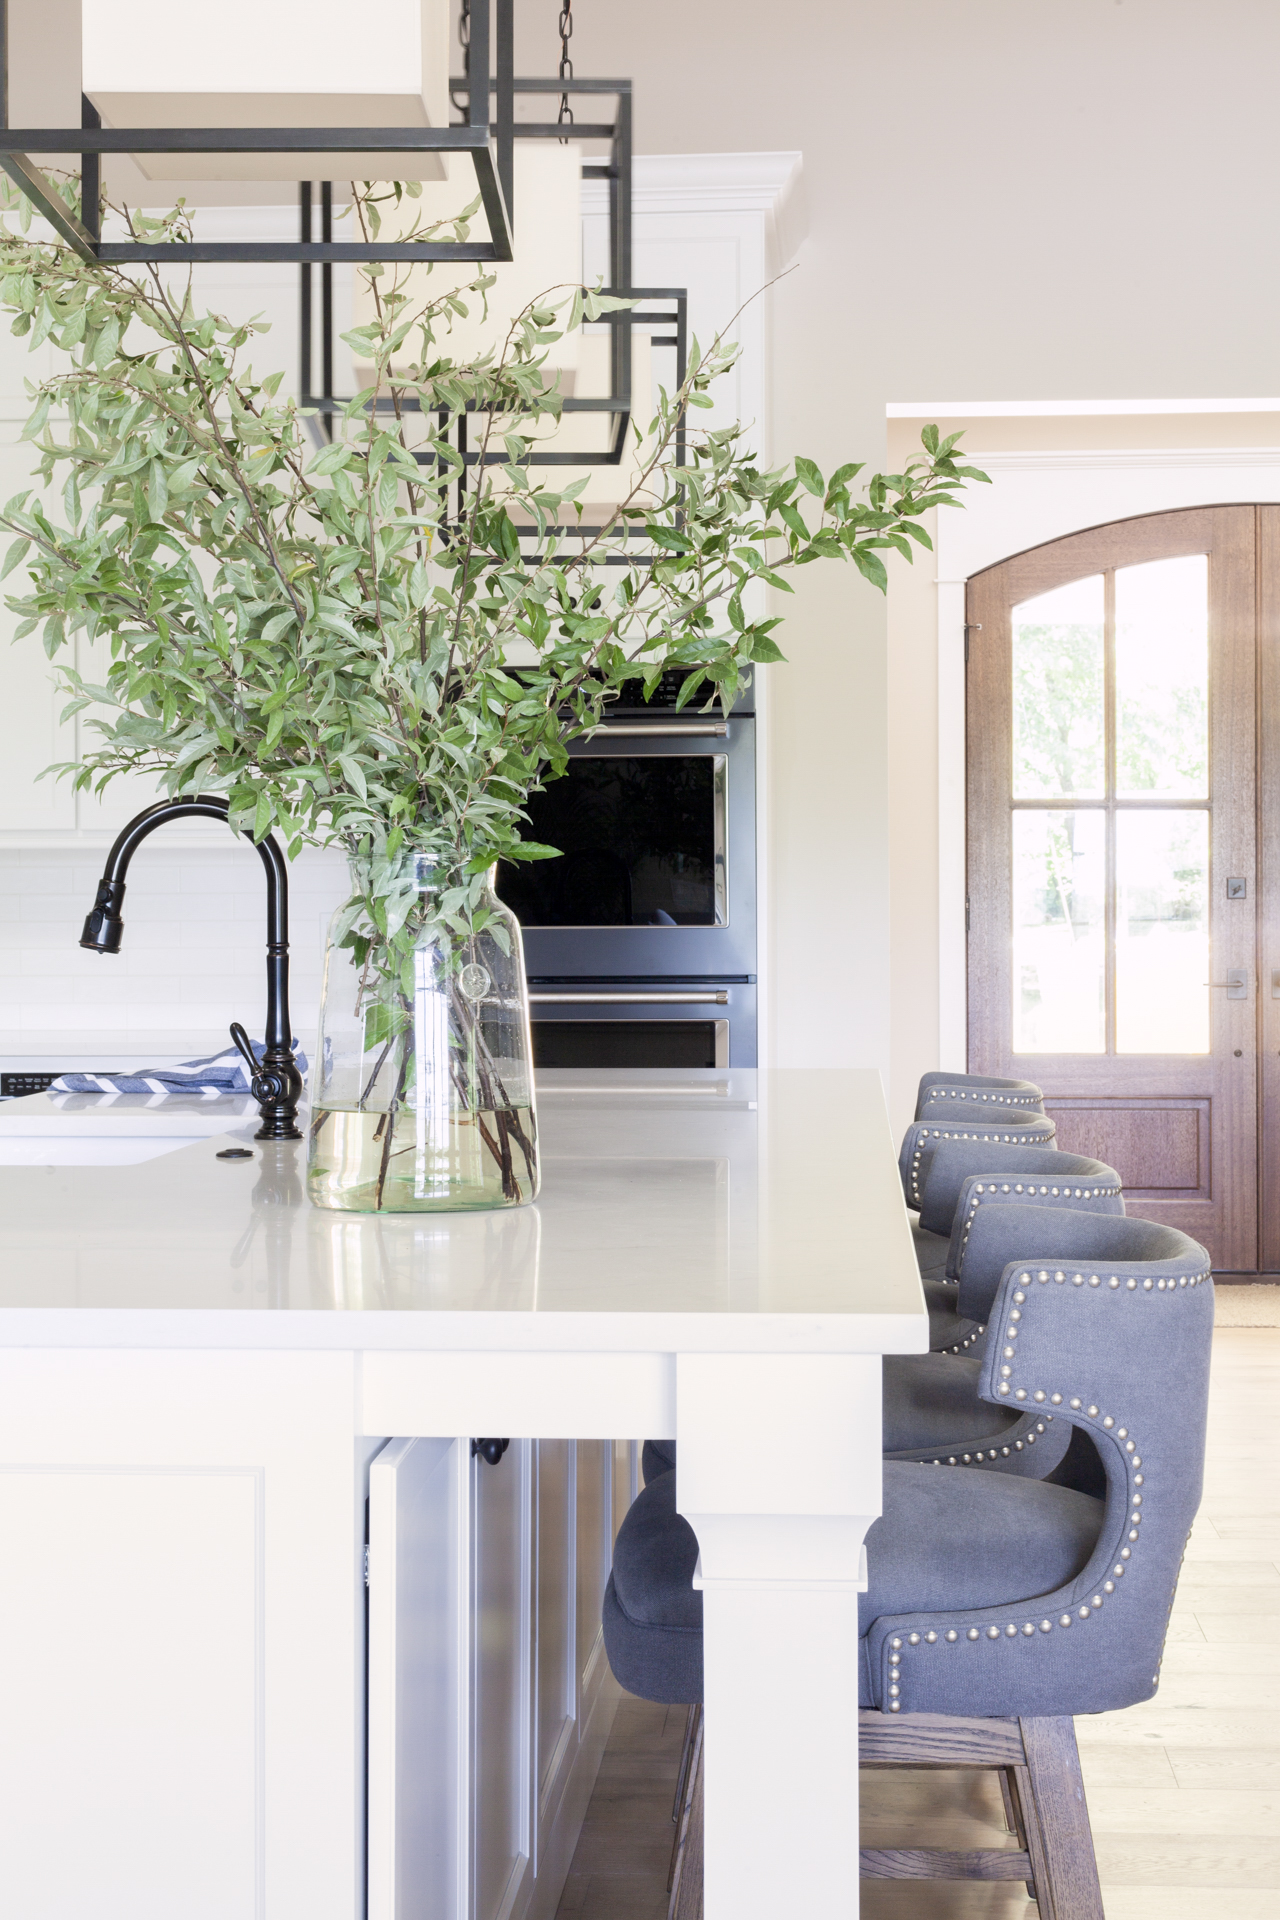 before-and-after-home-reveal-scout-and-nimble-lake-view-luxe-country-interior-design-kitchen-luxury-light-modern-pendant-white-kitchen-modern-vase-counter-stools-41.jpg